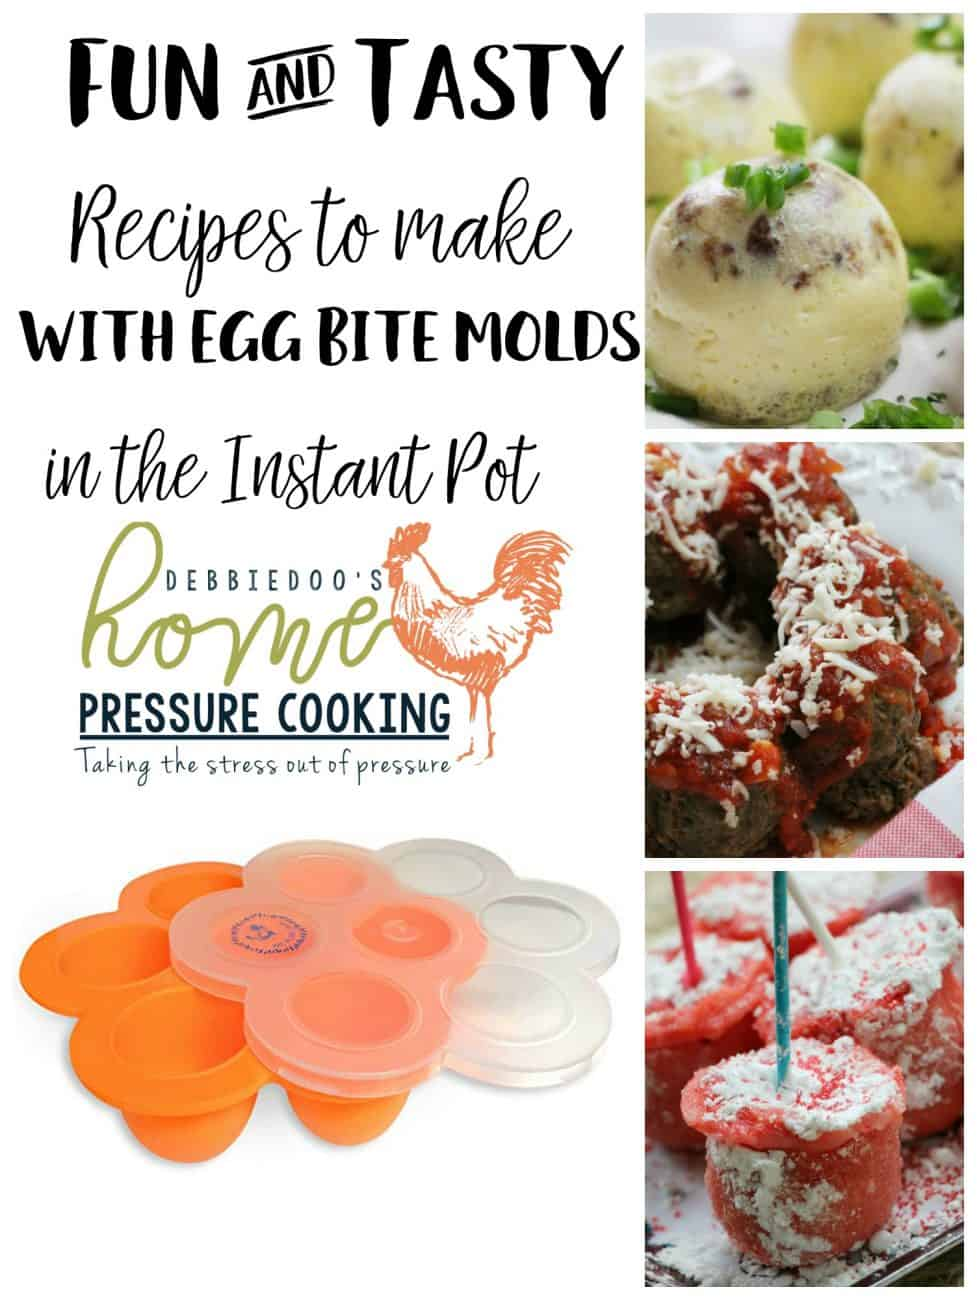 Recipes to make with egg bite molds in the instant pot home recipes to make with egg bite molds in the instant pot forumfinder Choice Image